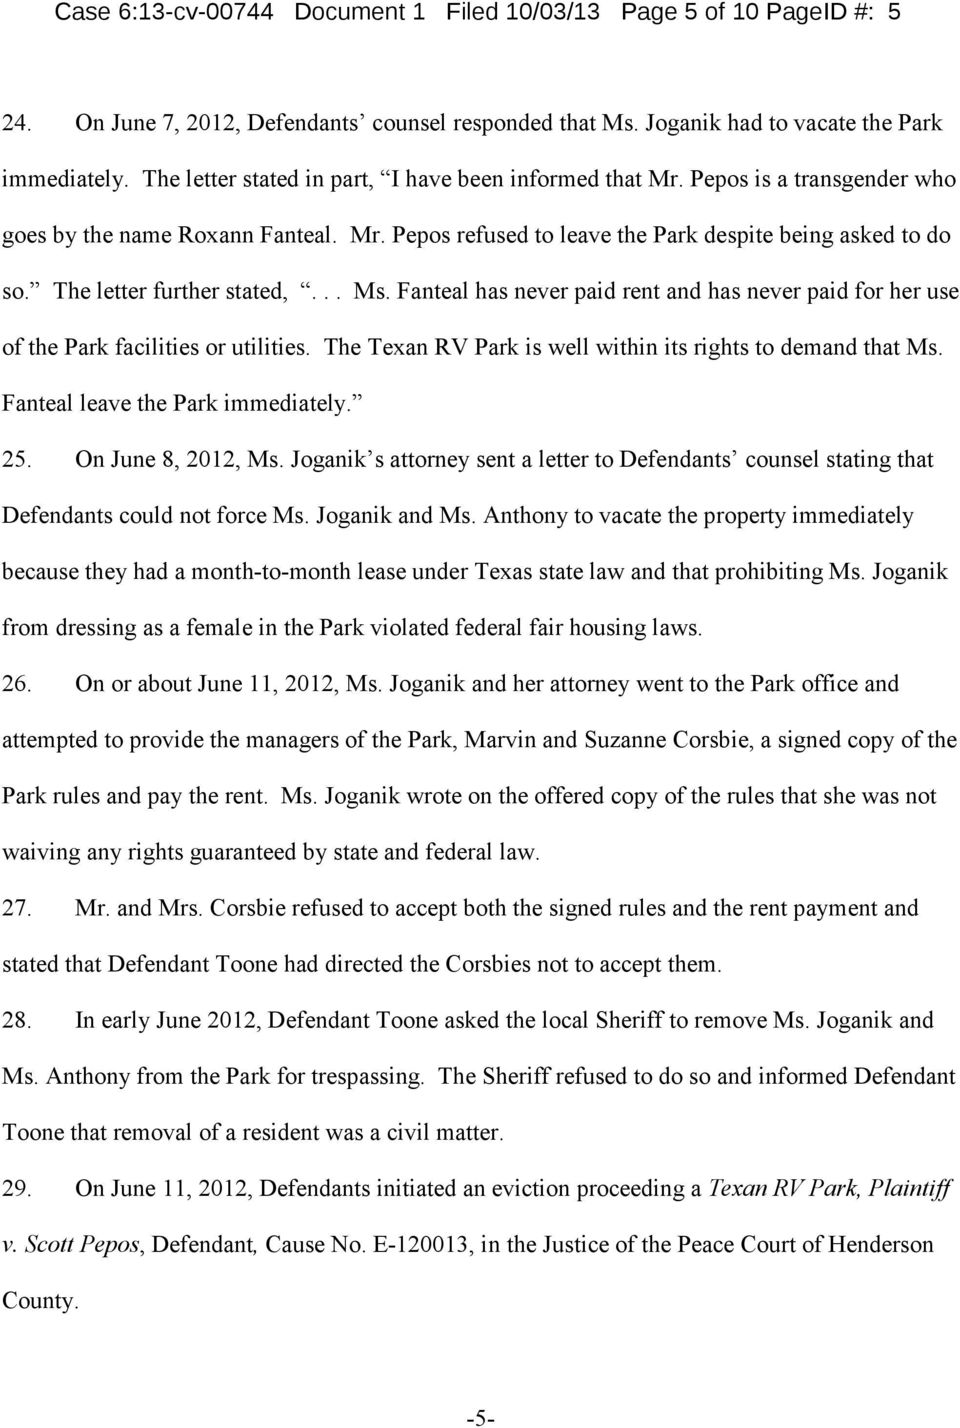 The letter further stated,... Ms. Fanteal has never paid rent and has never paid for her use of the Park facilities or utilities. The Texan RV Park is well within its rights to demand that Ms.